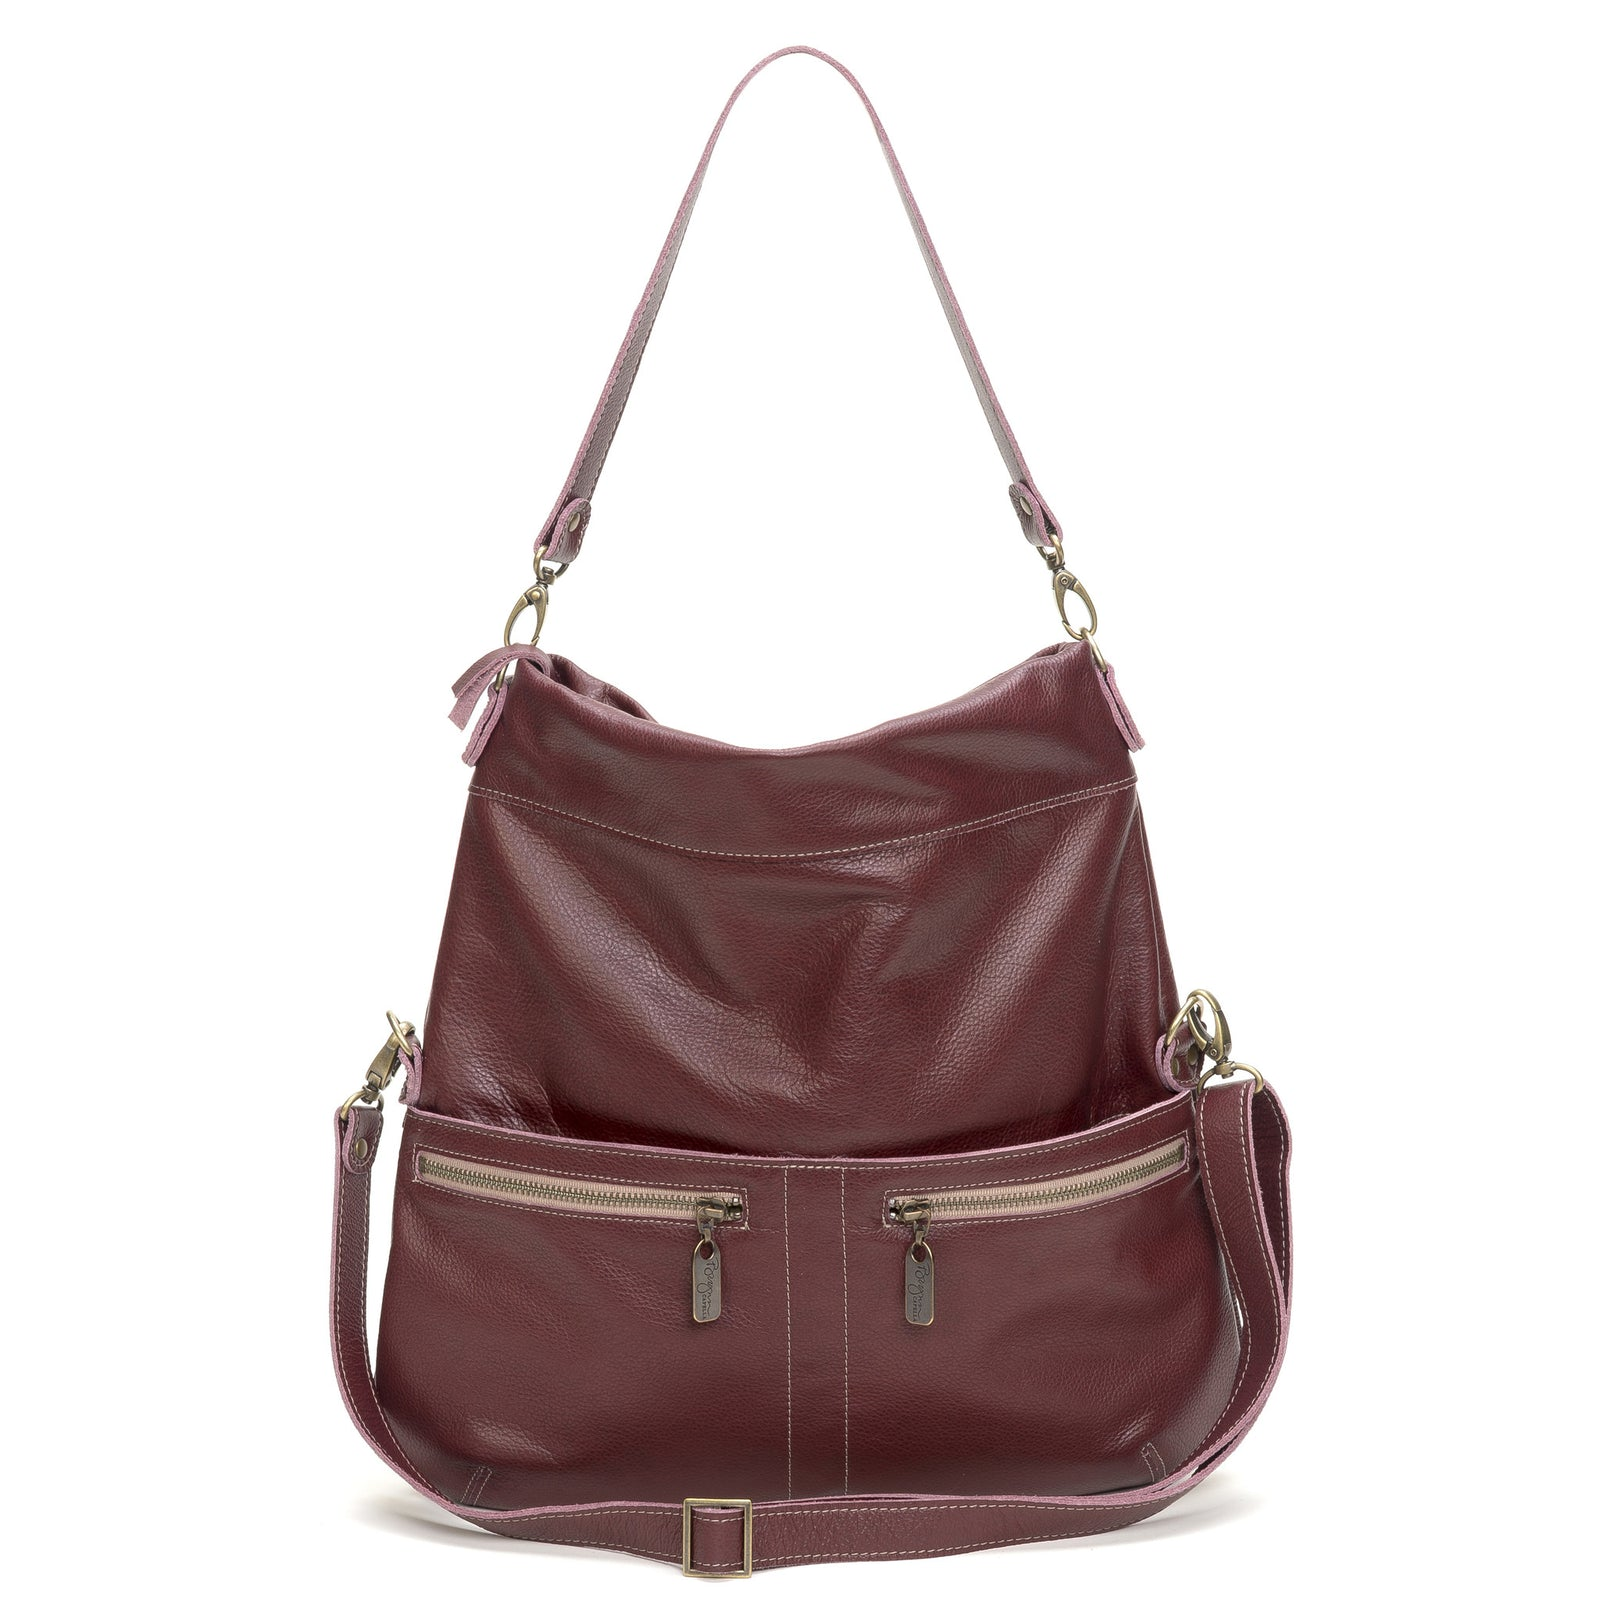 Lauren Crossbody - Free Love - Brynn Capella, Large Crossbody